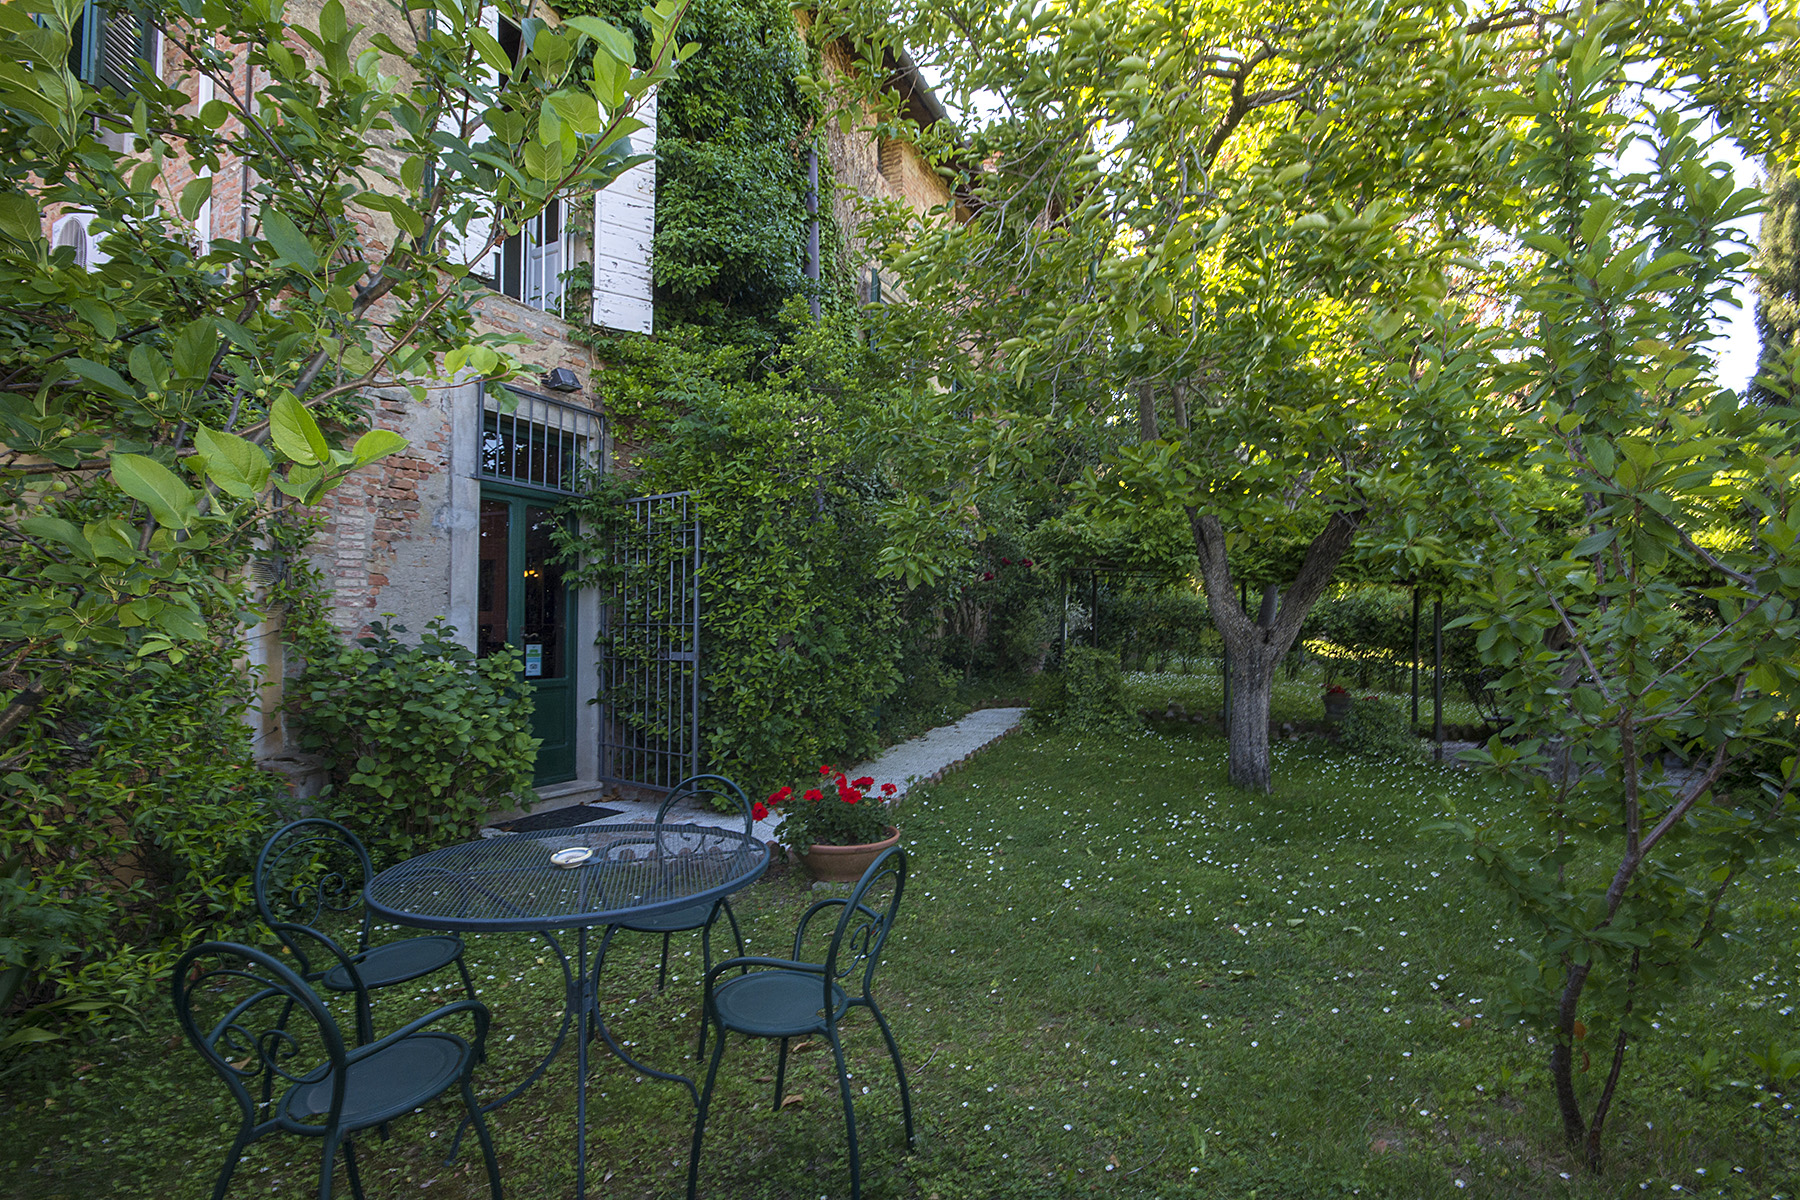 Single Family Home for Sale at Beautiful 19th century villa in the medieval village of Palaia Palaia, Pisa Italy